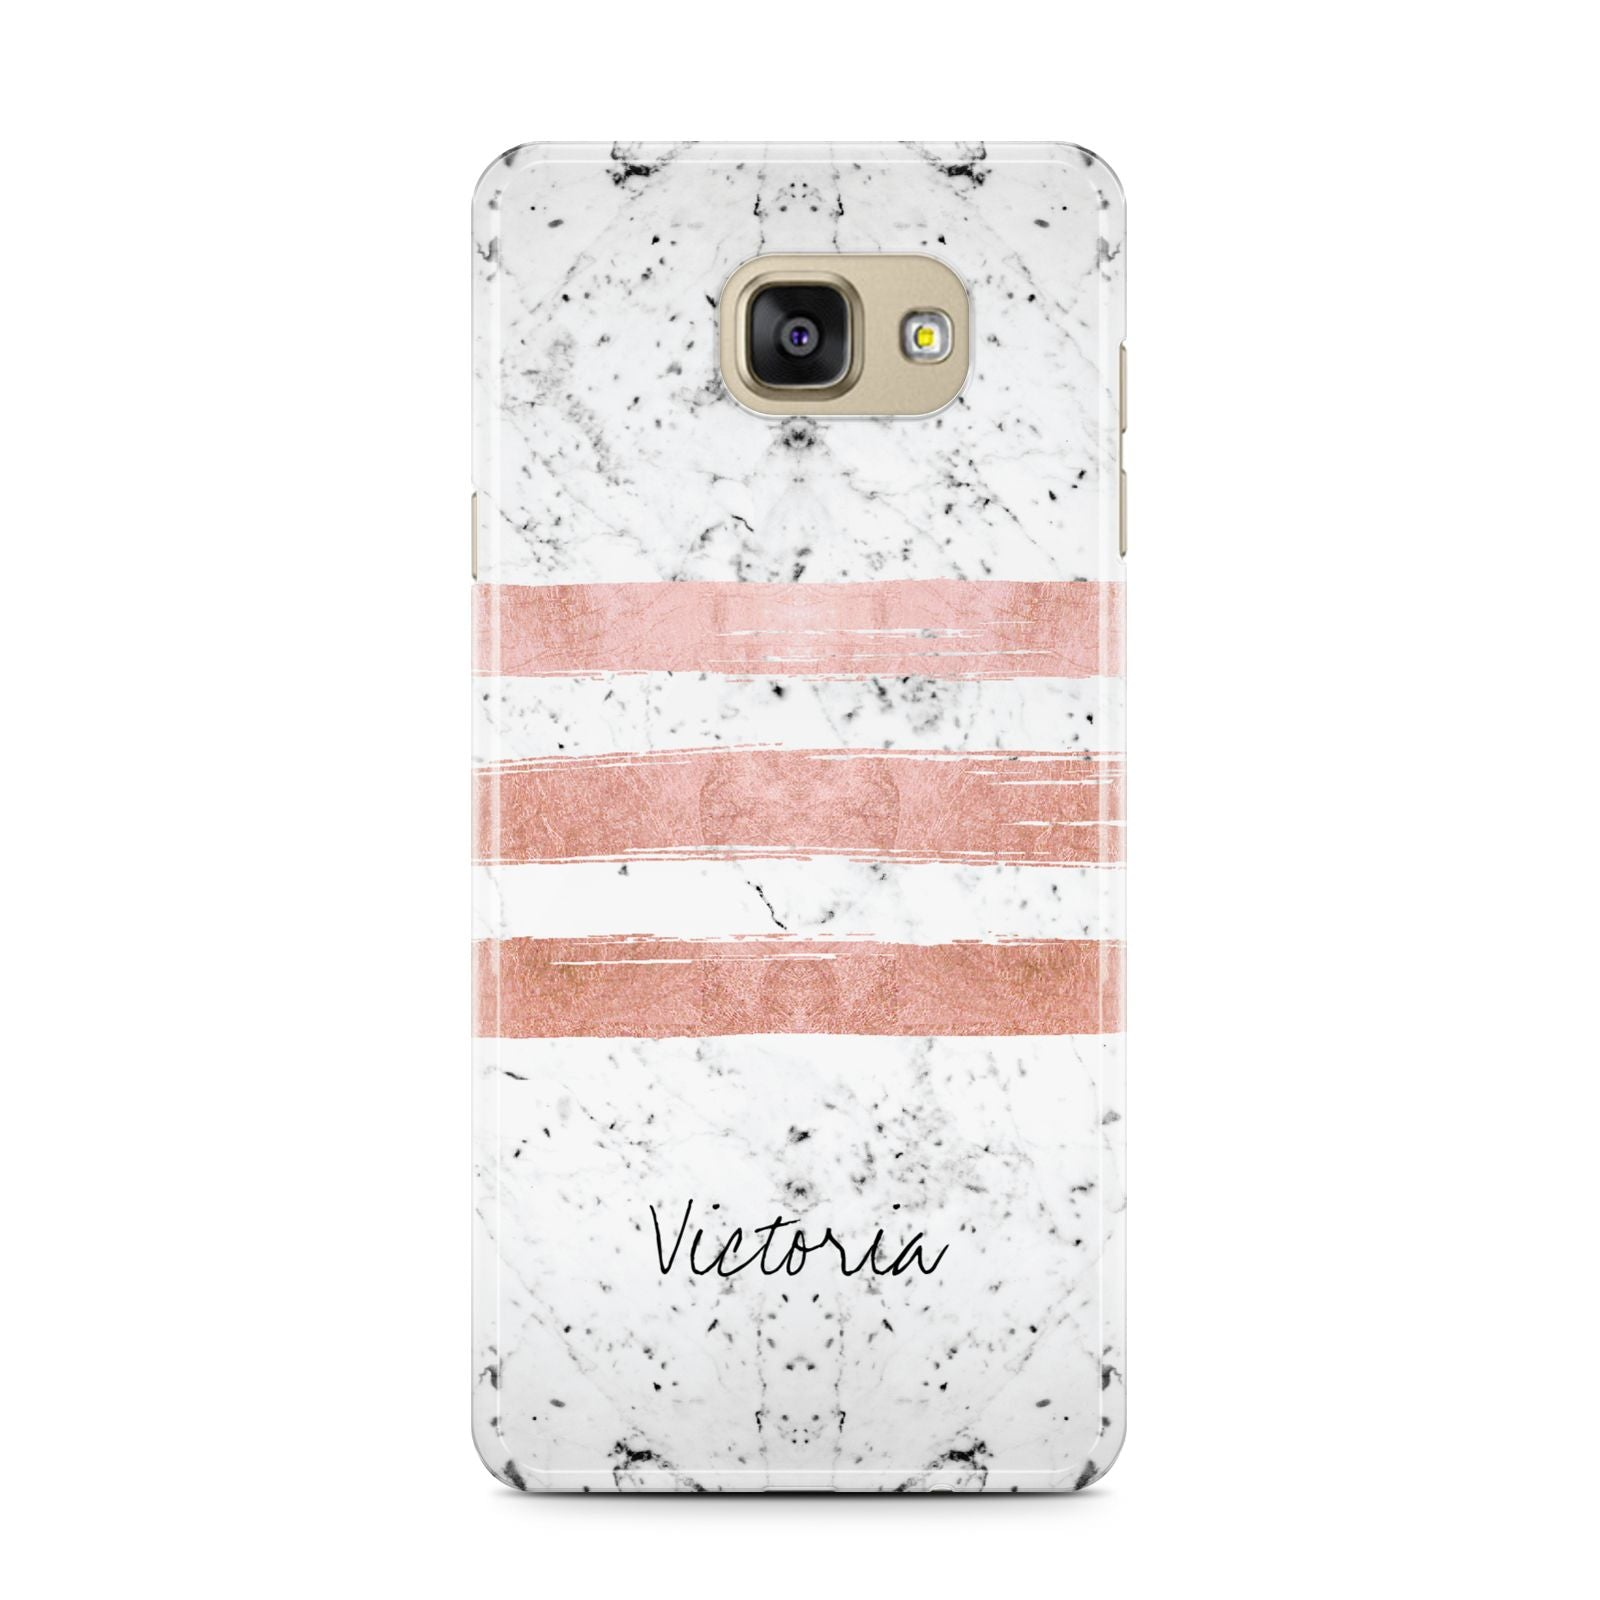 Personalised Rose Gold Brush Marble Initial Samsung Galaxy A7 2016 Case on gold phone